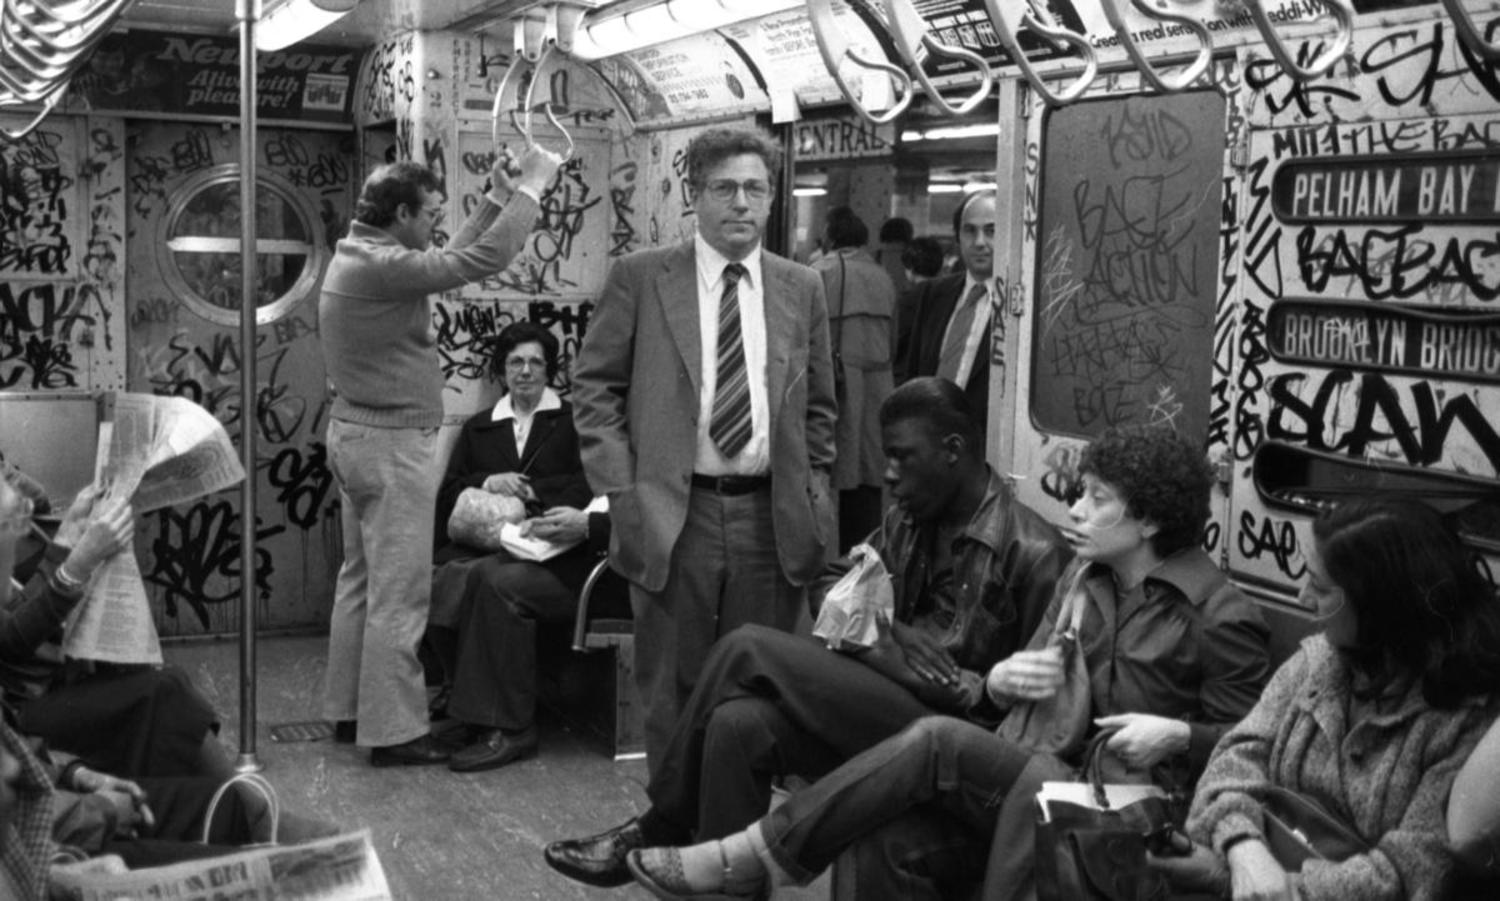 1980's: A man wearing a crisp business suit pops against this subway car scrawled over with heavy graffiti.